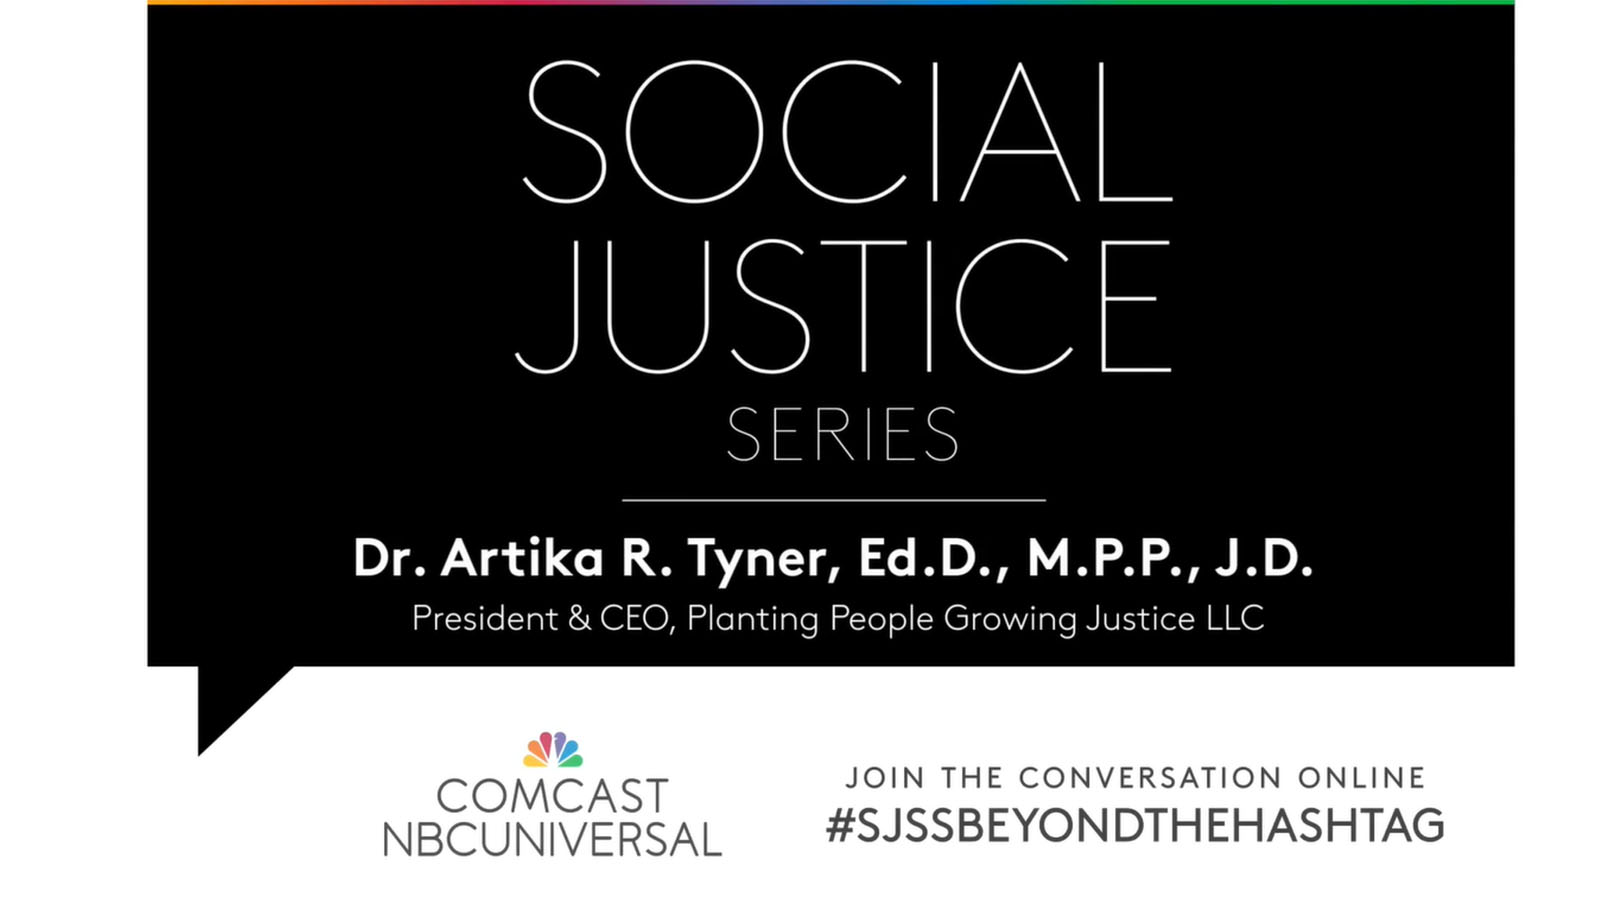 Social Justice Series: School-to-Prison Pipeline with Dr. Artika Tyner